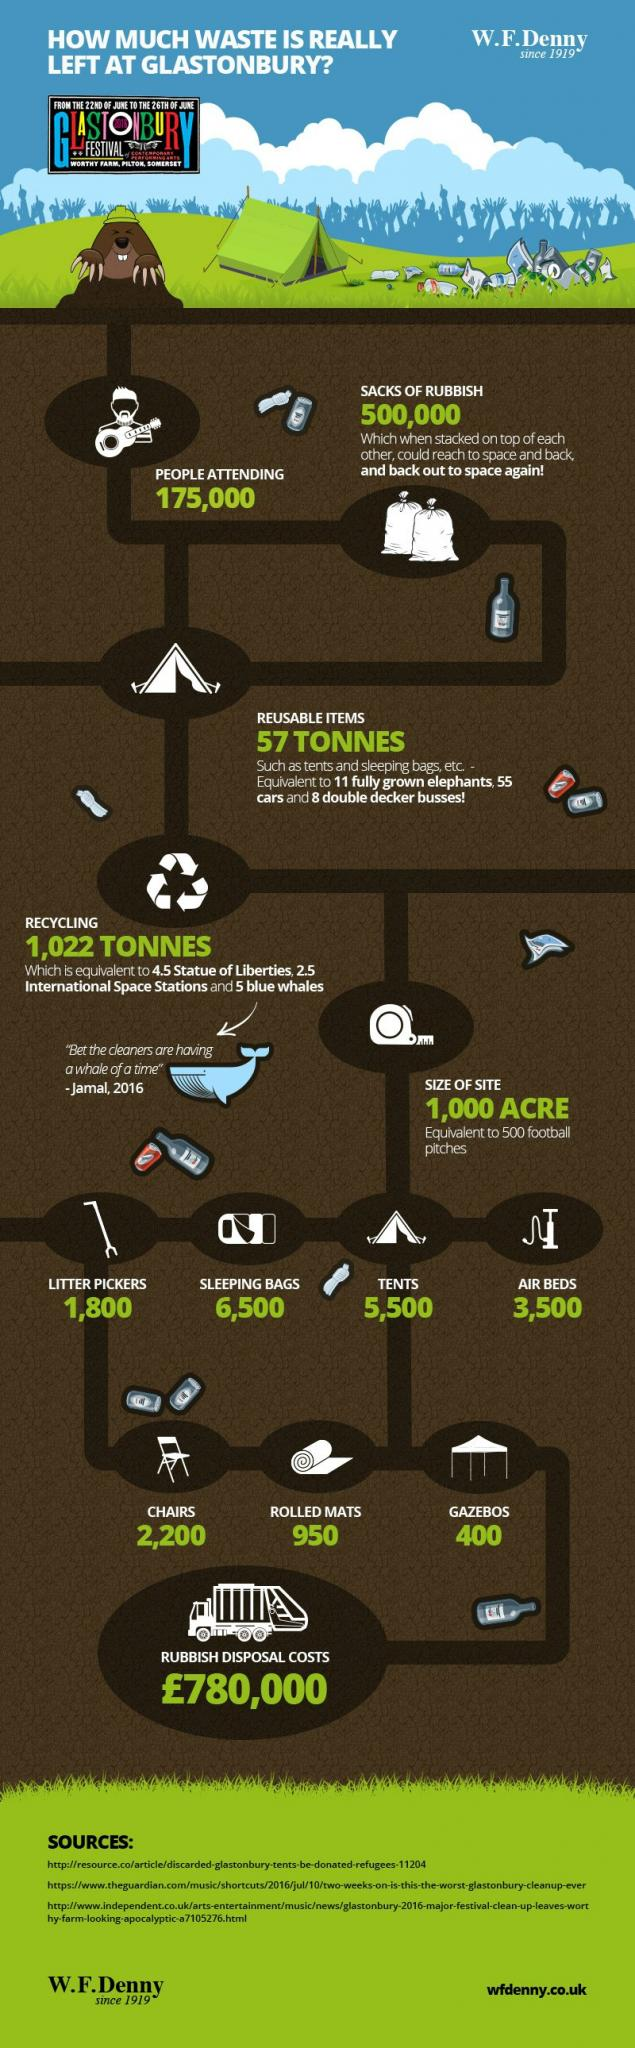 environmental impact of music festivals and packaging waste